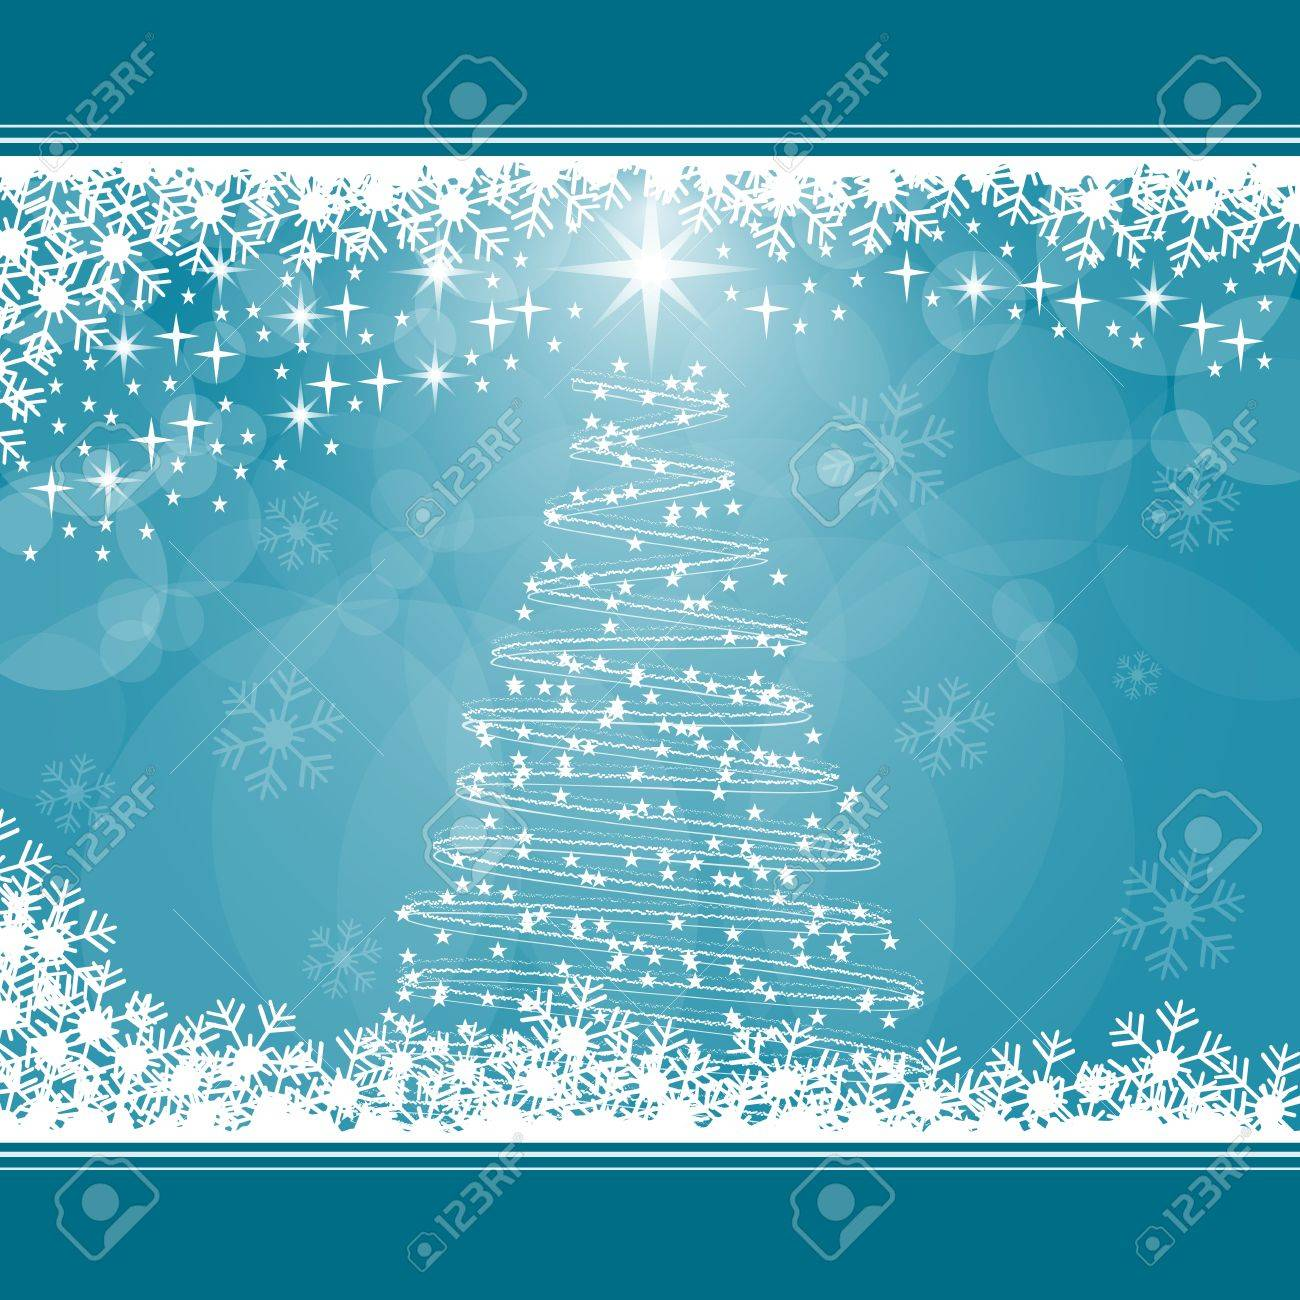 Christmas tree, snowflakes and stars on blue background. Copy space for text. Stock Vector - 15783797